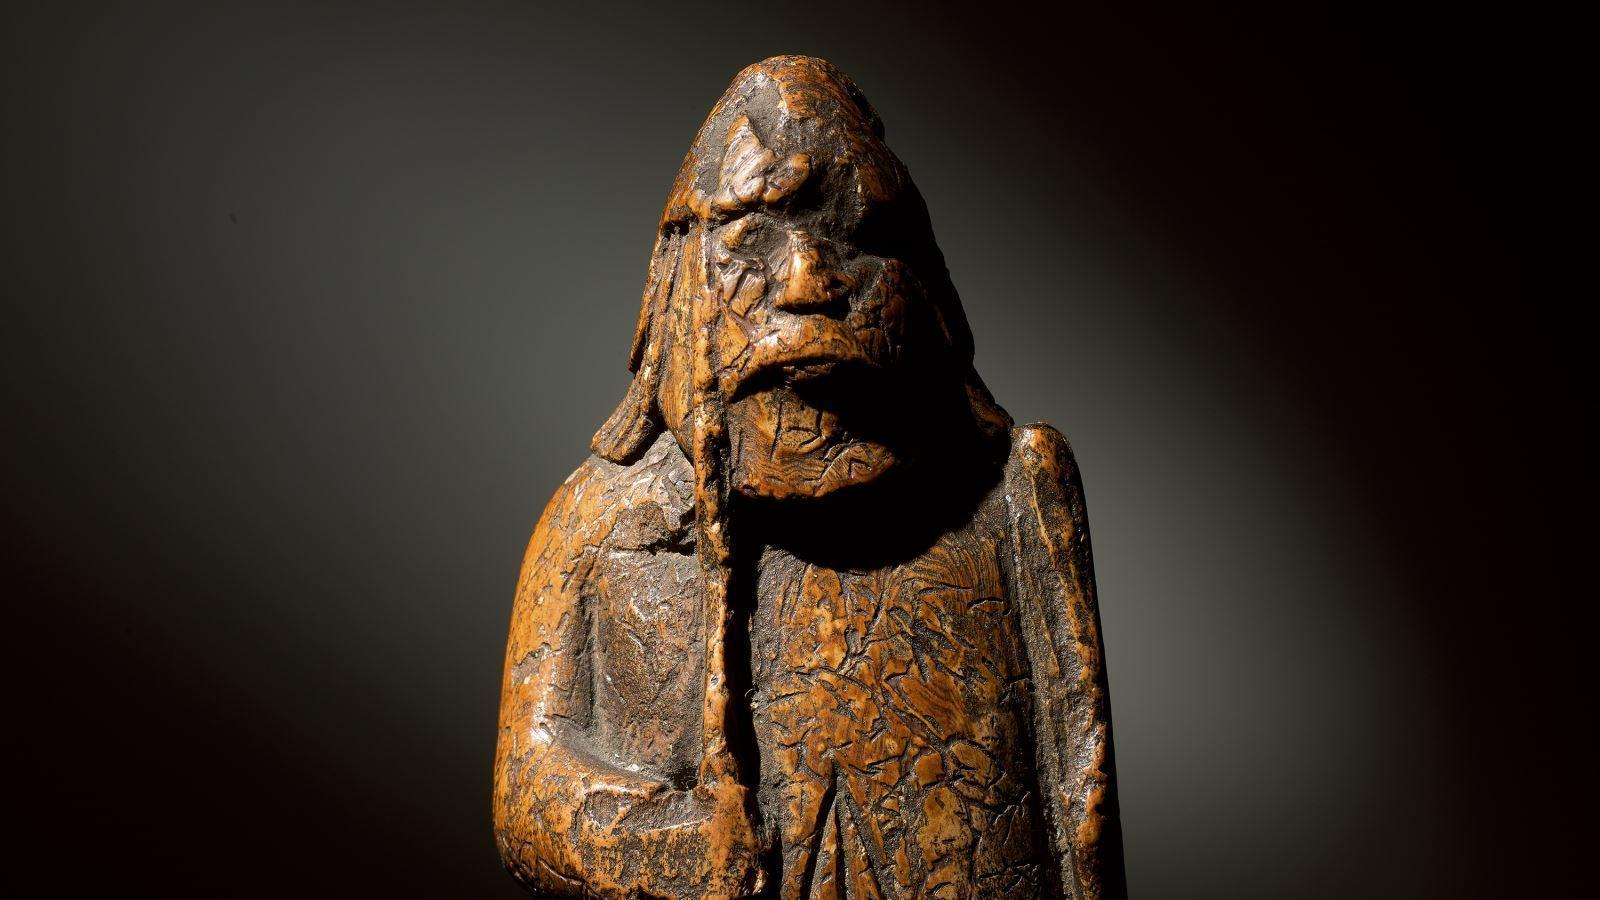 http://kyluc.vn/Userfiles/Upload/images/190603071817-02-lewis-chessman-0603.jpg